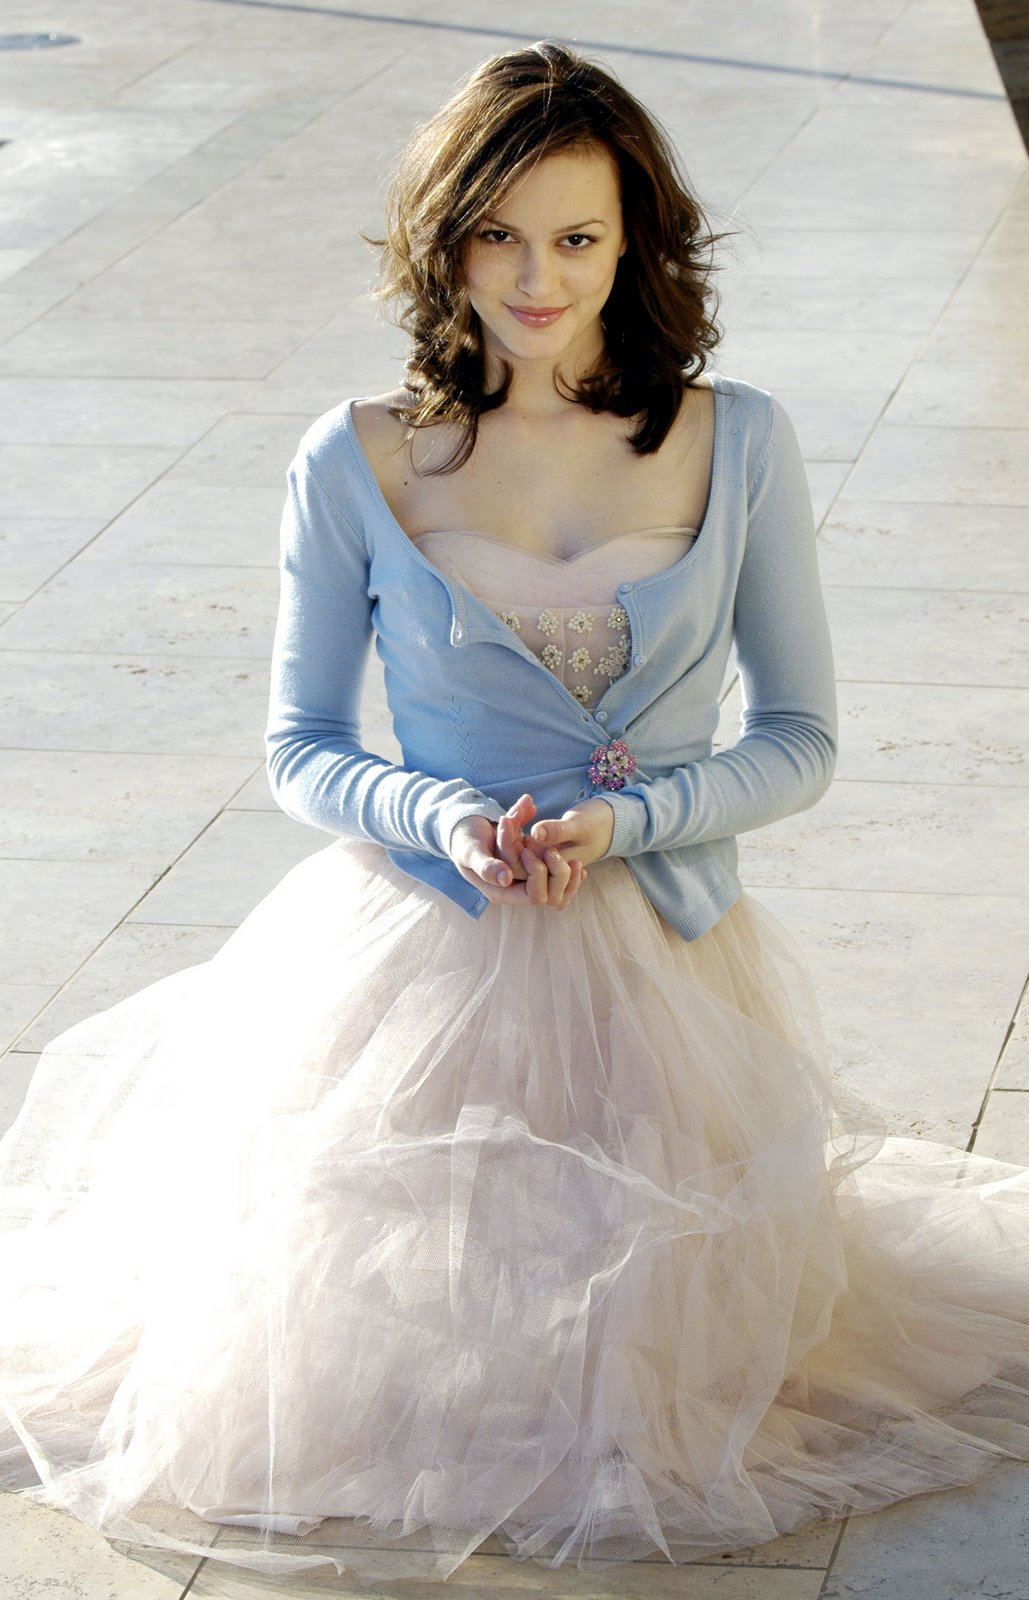 Leighton Meester  Gossip Girl Photo 401112  Fanpop